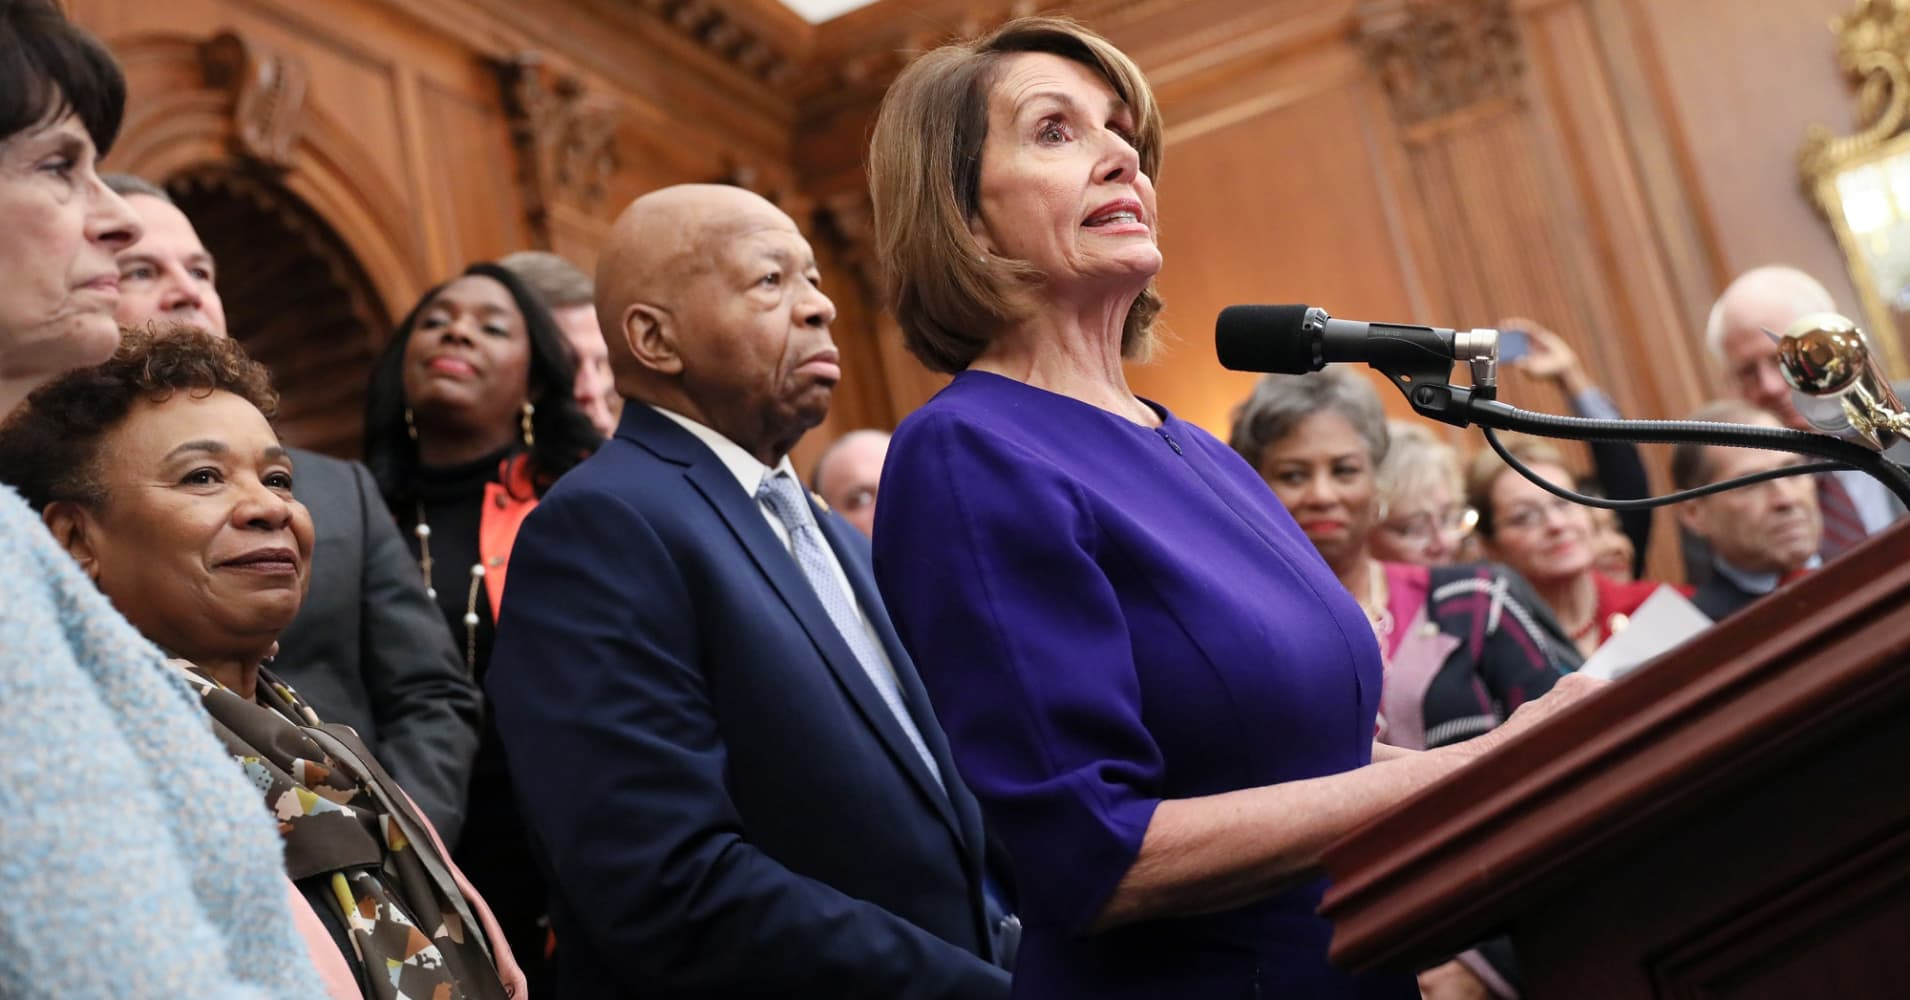 Speaker Nancy Pelosi (D-CA) leads Democrats in introducing proposed government reform legislation, which they've titled the For the People Act, at the U.S. Capitol in Washington, U.S. January 4, 2019.